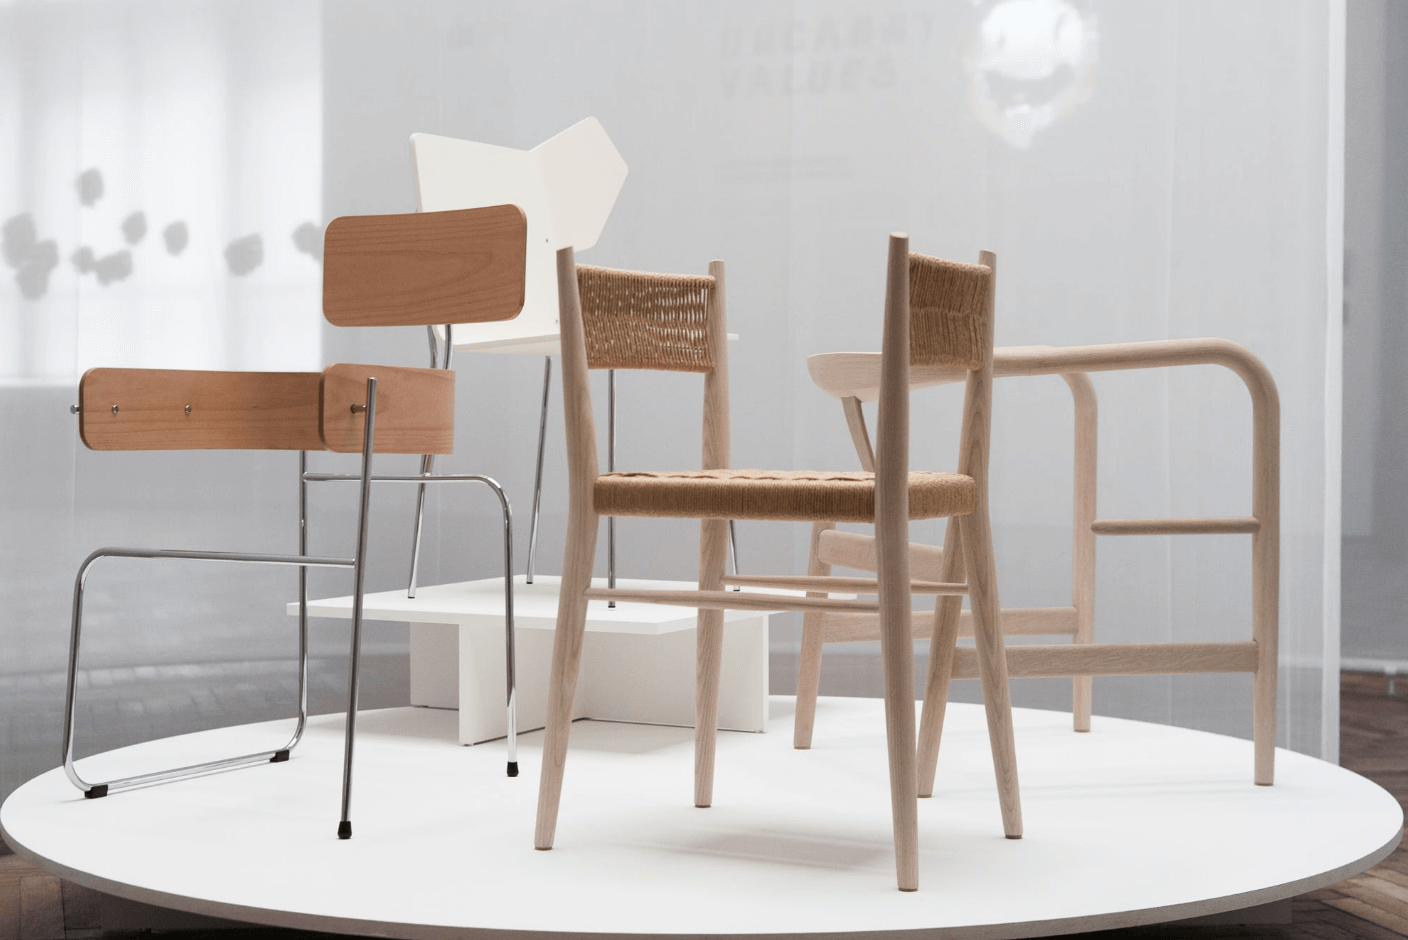 The Chair Project (Four Classics) - AI-designed, human-executed chairs. Exploring co-design with AI, they suggest ways of looking that de-center the human; yet are completely useless, an irony of AI solutionism.